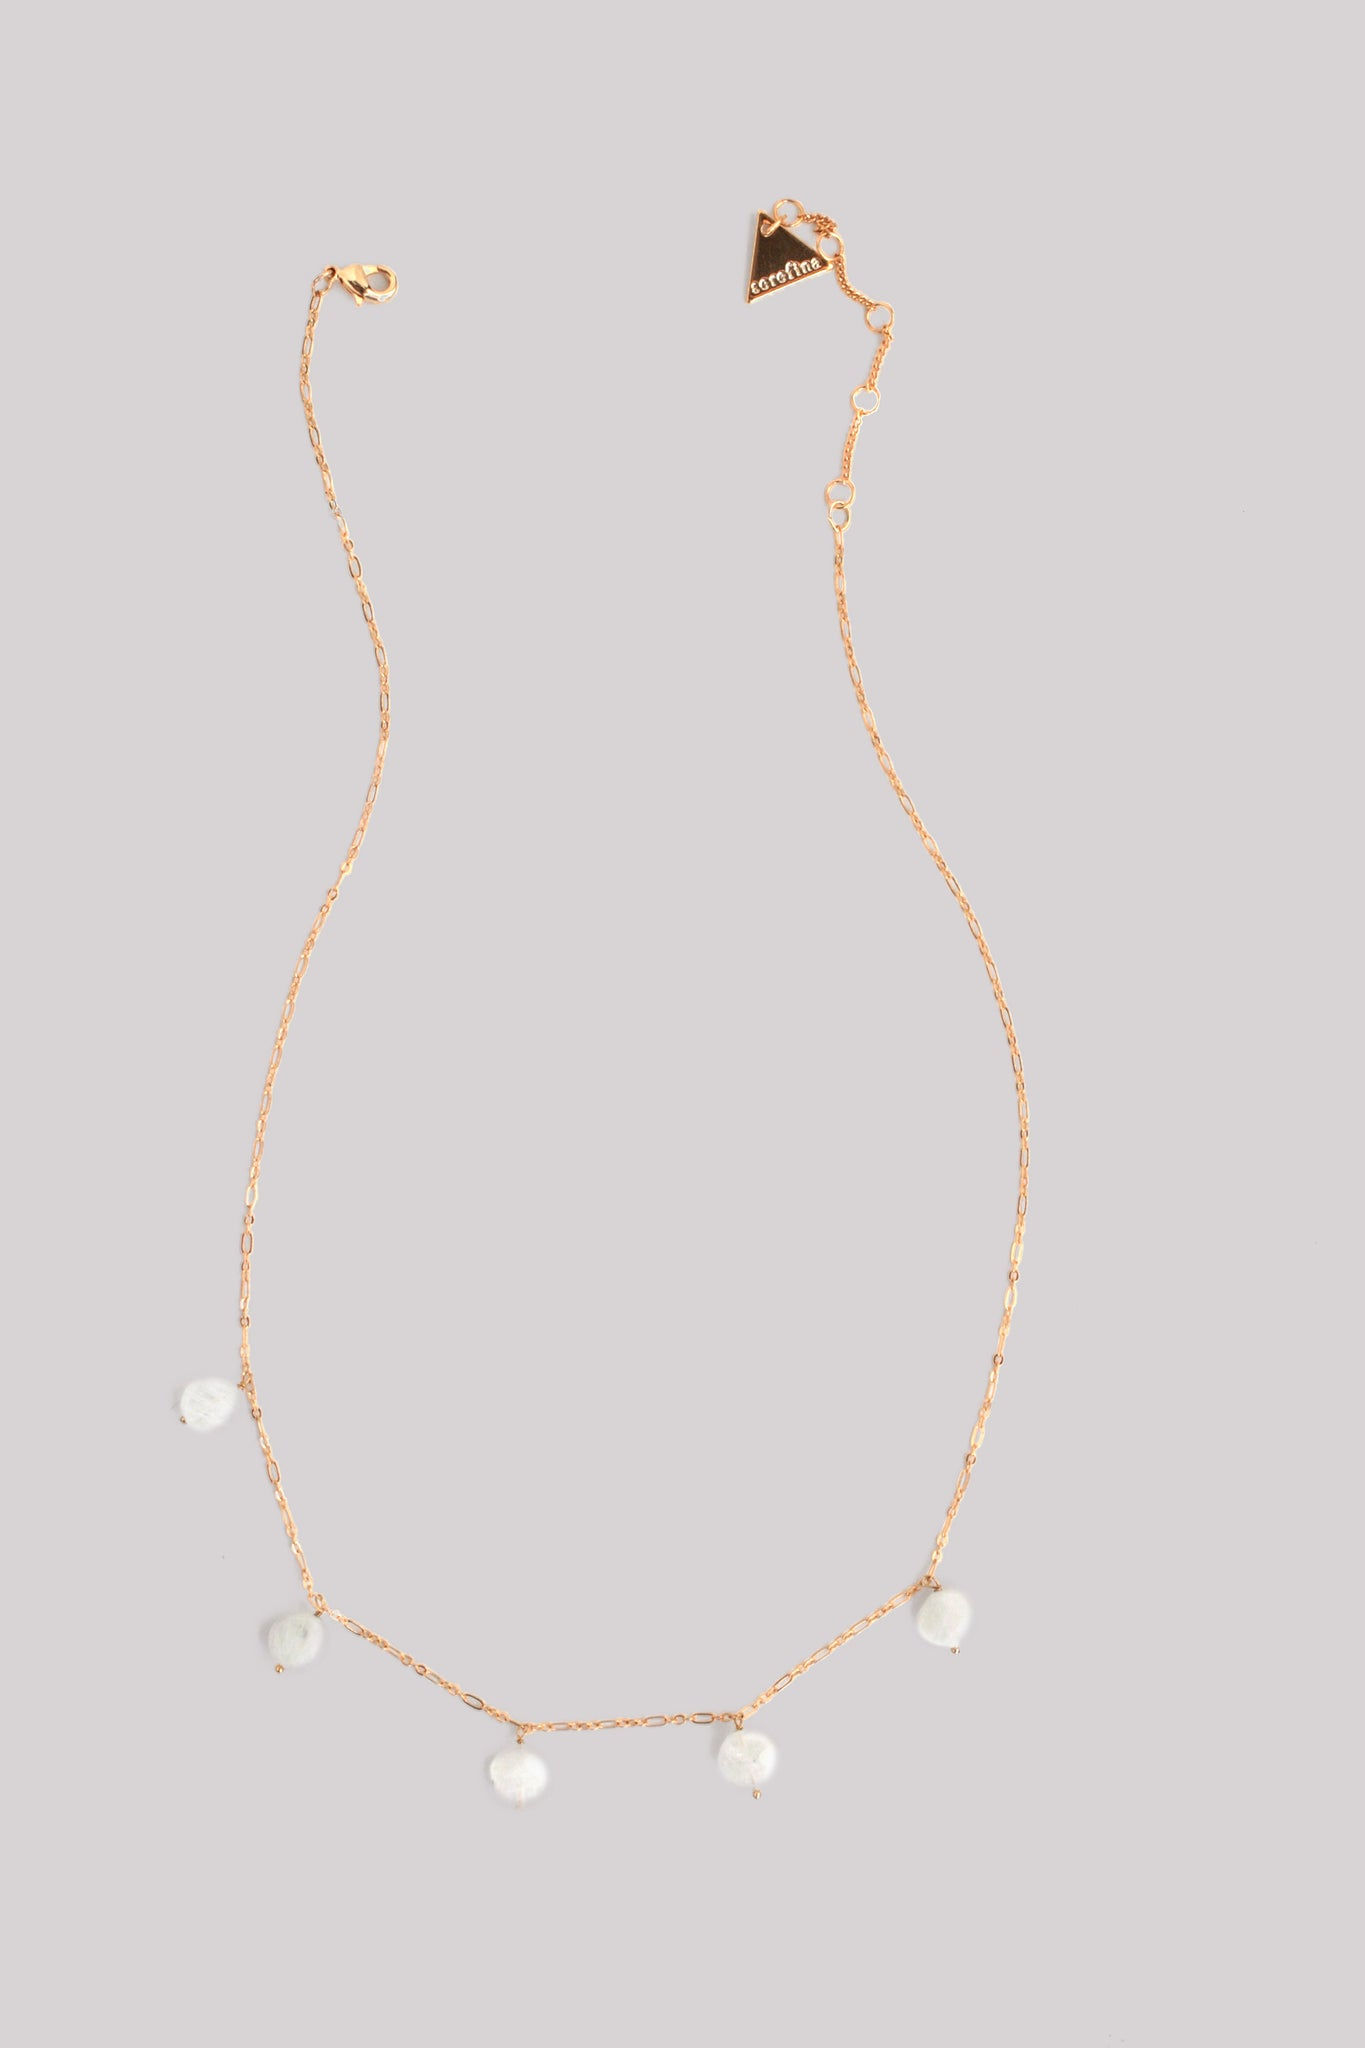 Dainty Scattered Stone Necklace - Moonstone